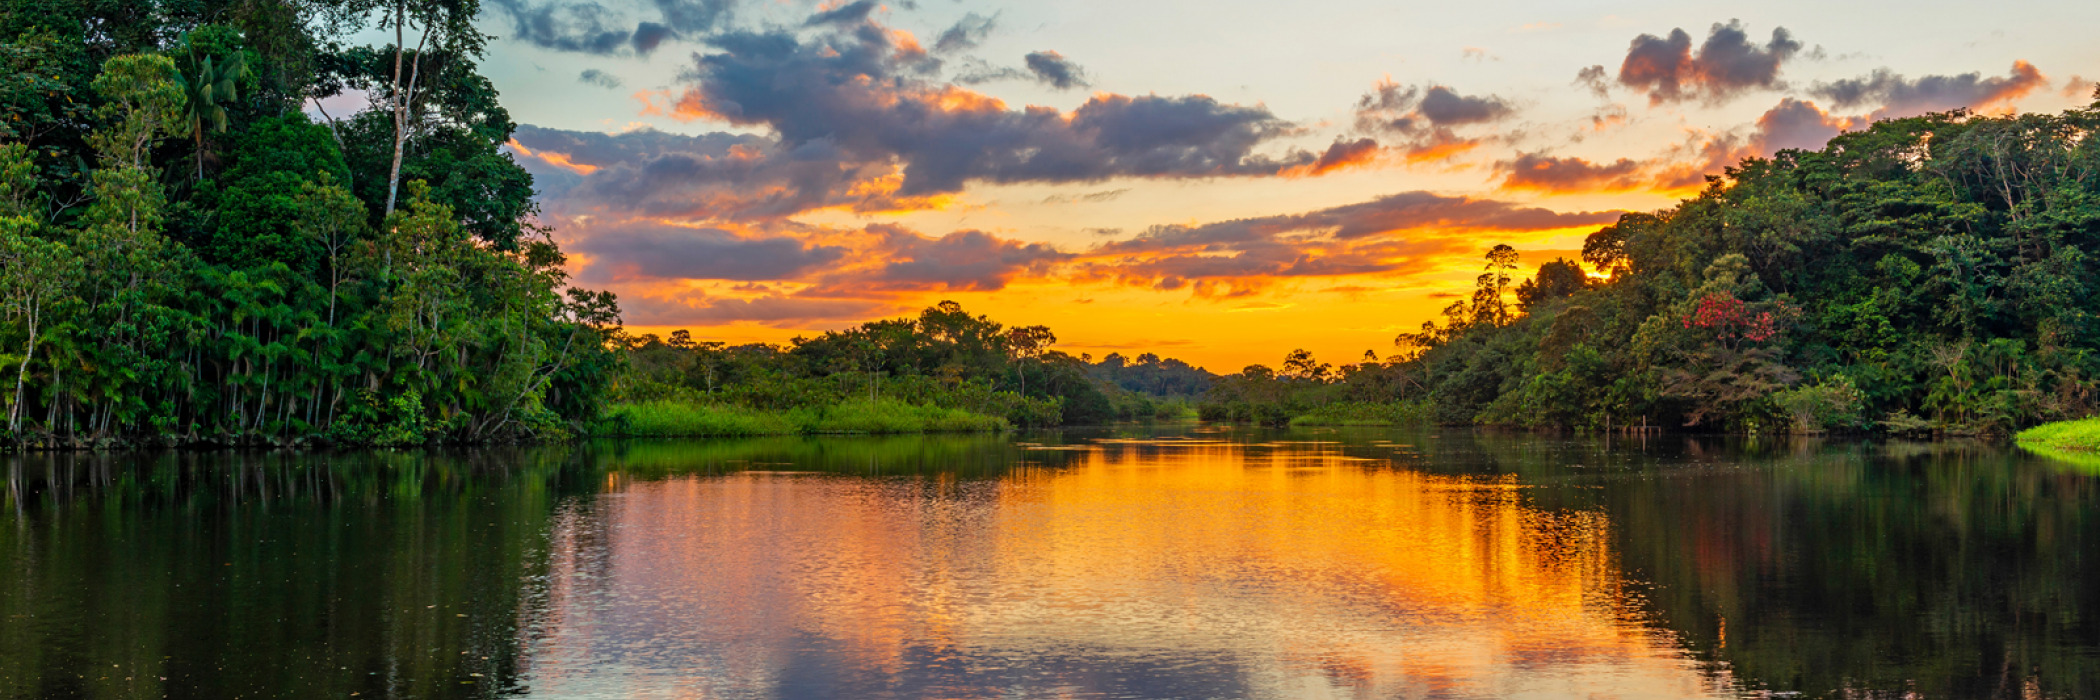 Reflection of a sunset by a lagoon inside the Amazon Rainforest Basin.